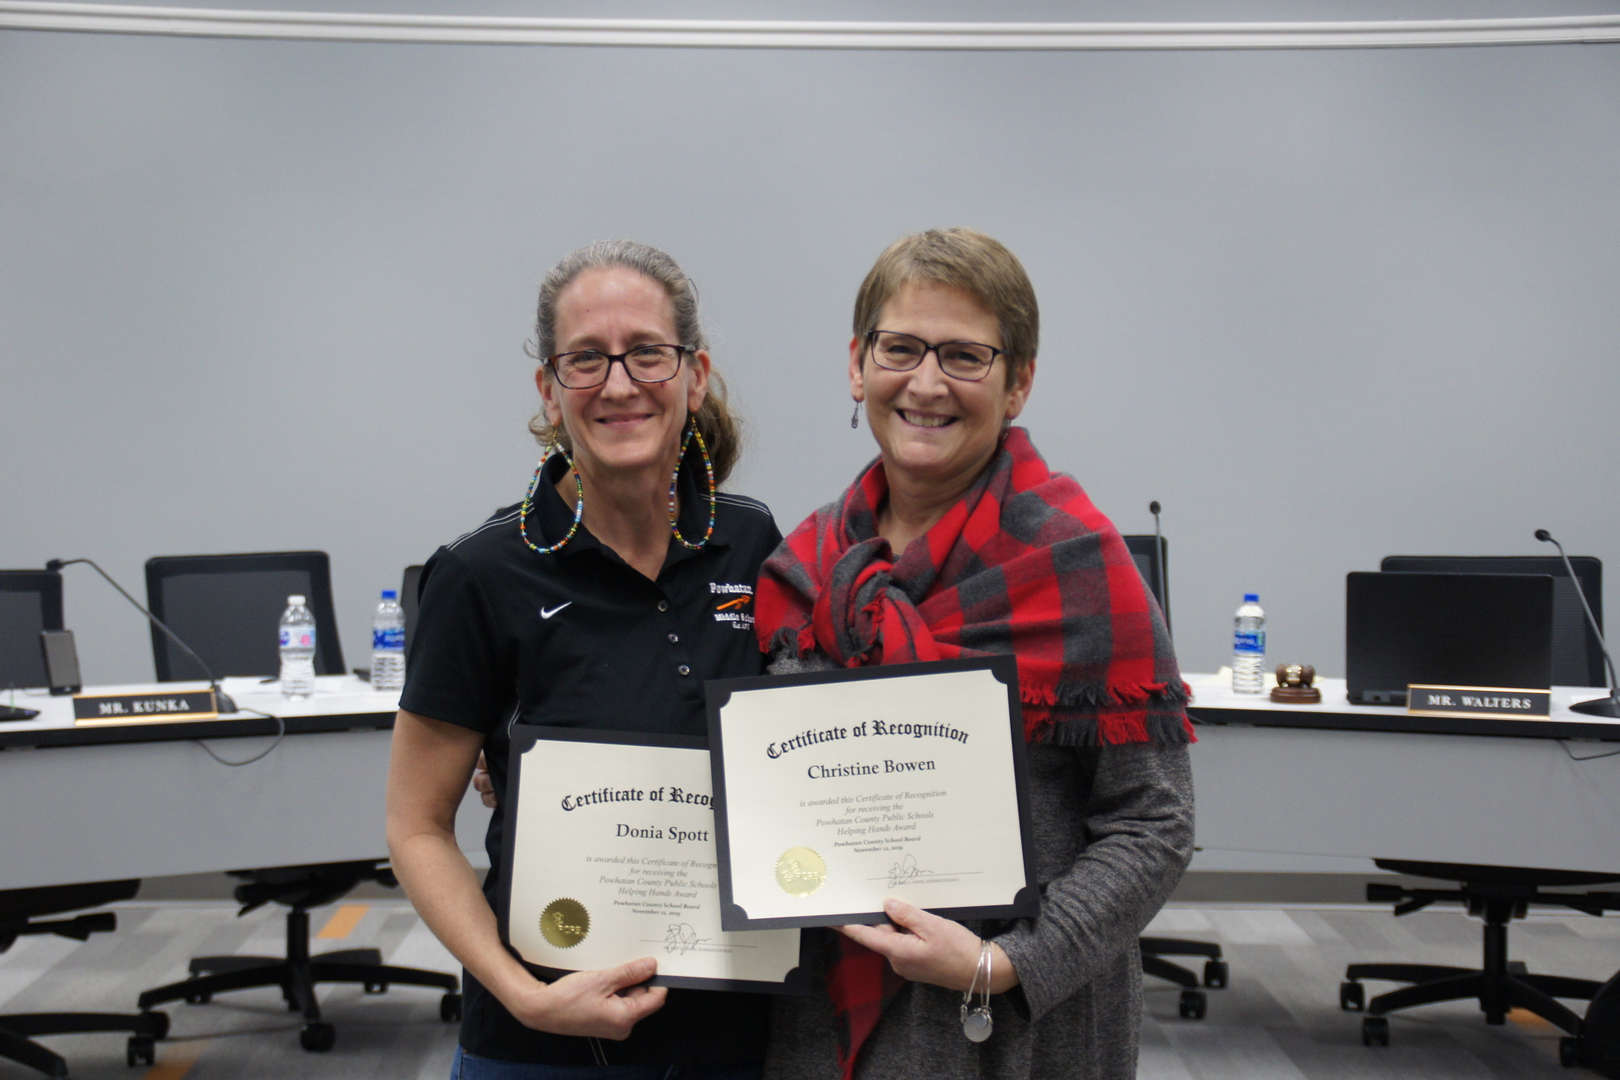 2019 Helping Hands Award Recipients: Donia Spott & Christine Bowen